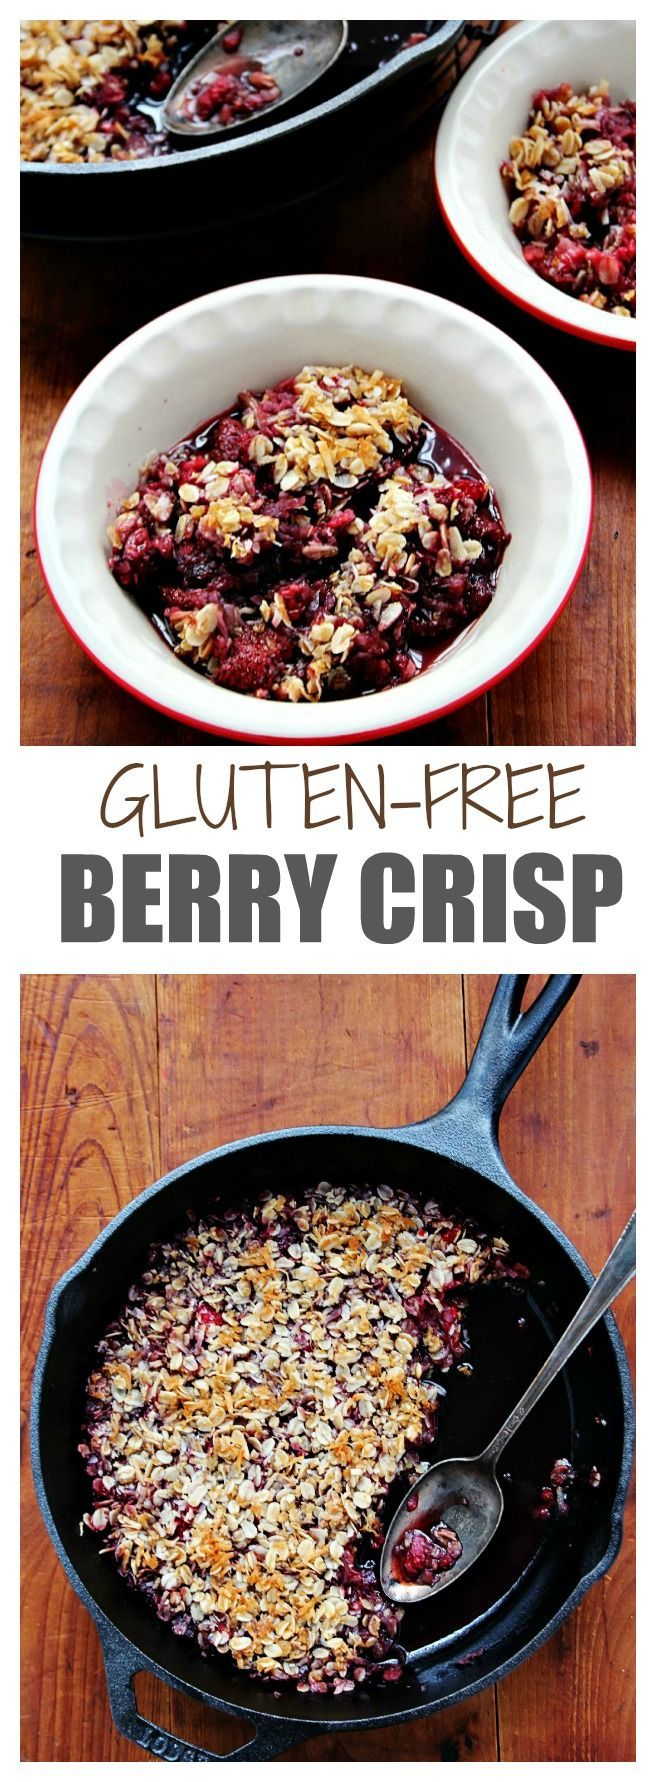 Gluten Free Berry Crisp - super easy and delicious dessert baked in a skillet! The coconut-oat topping is crazy good!